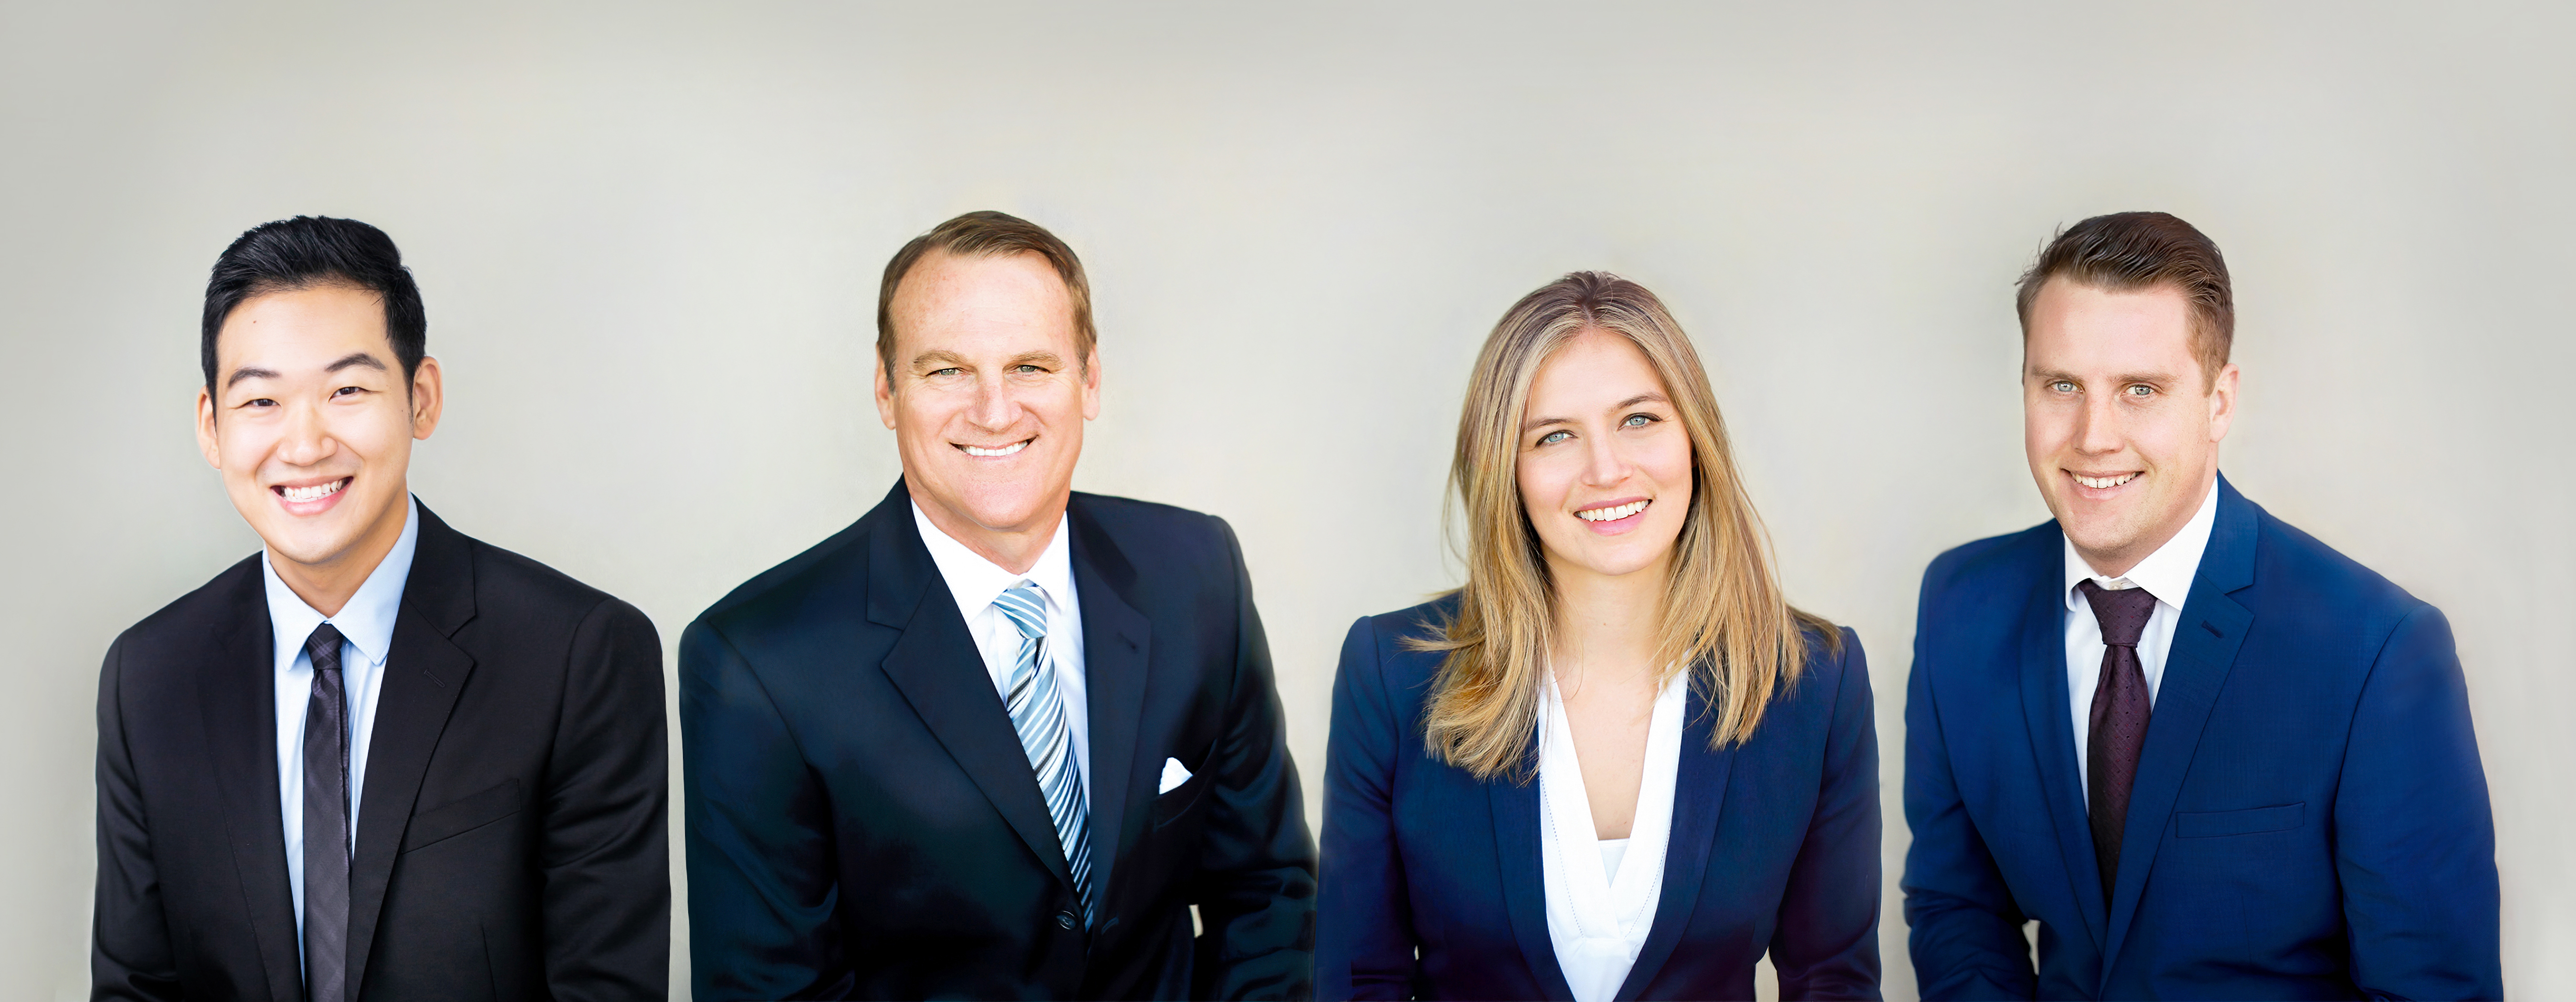 Taylor Family Wealth Management Robert Taylor, Kimberly Guha, Carolyn Eirich, Kevin Clark Fennell